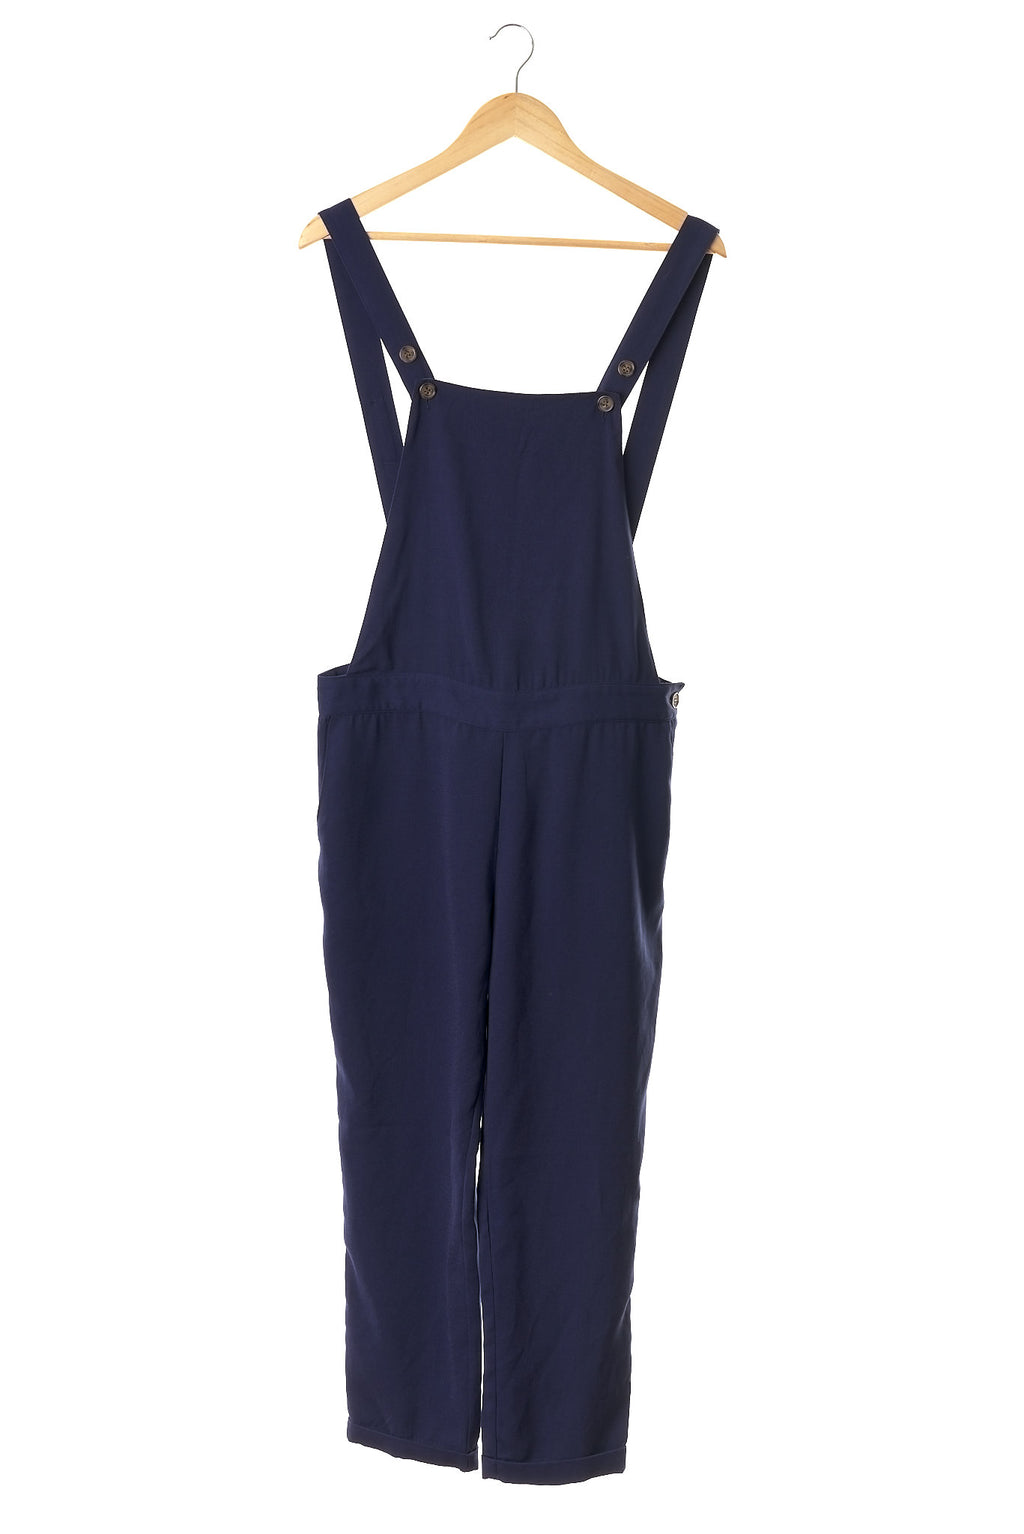 Navy Designer Dungaree Jumpsuit